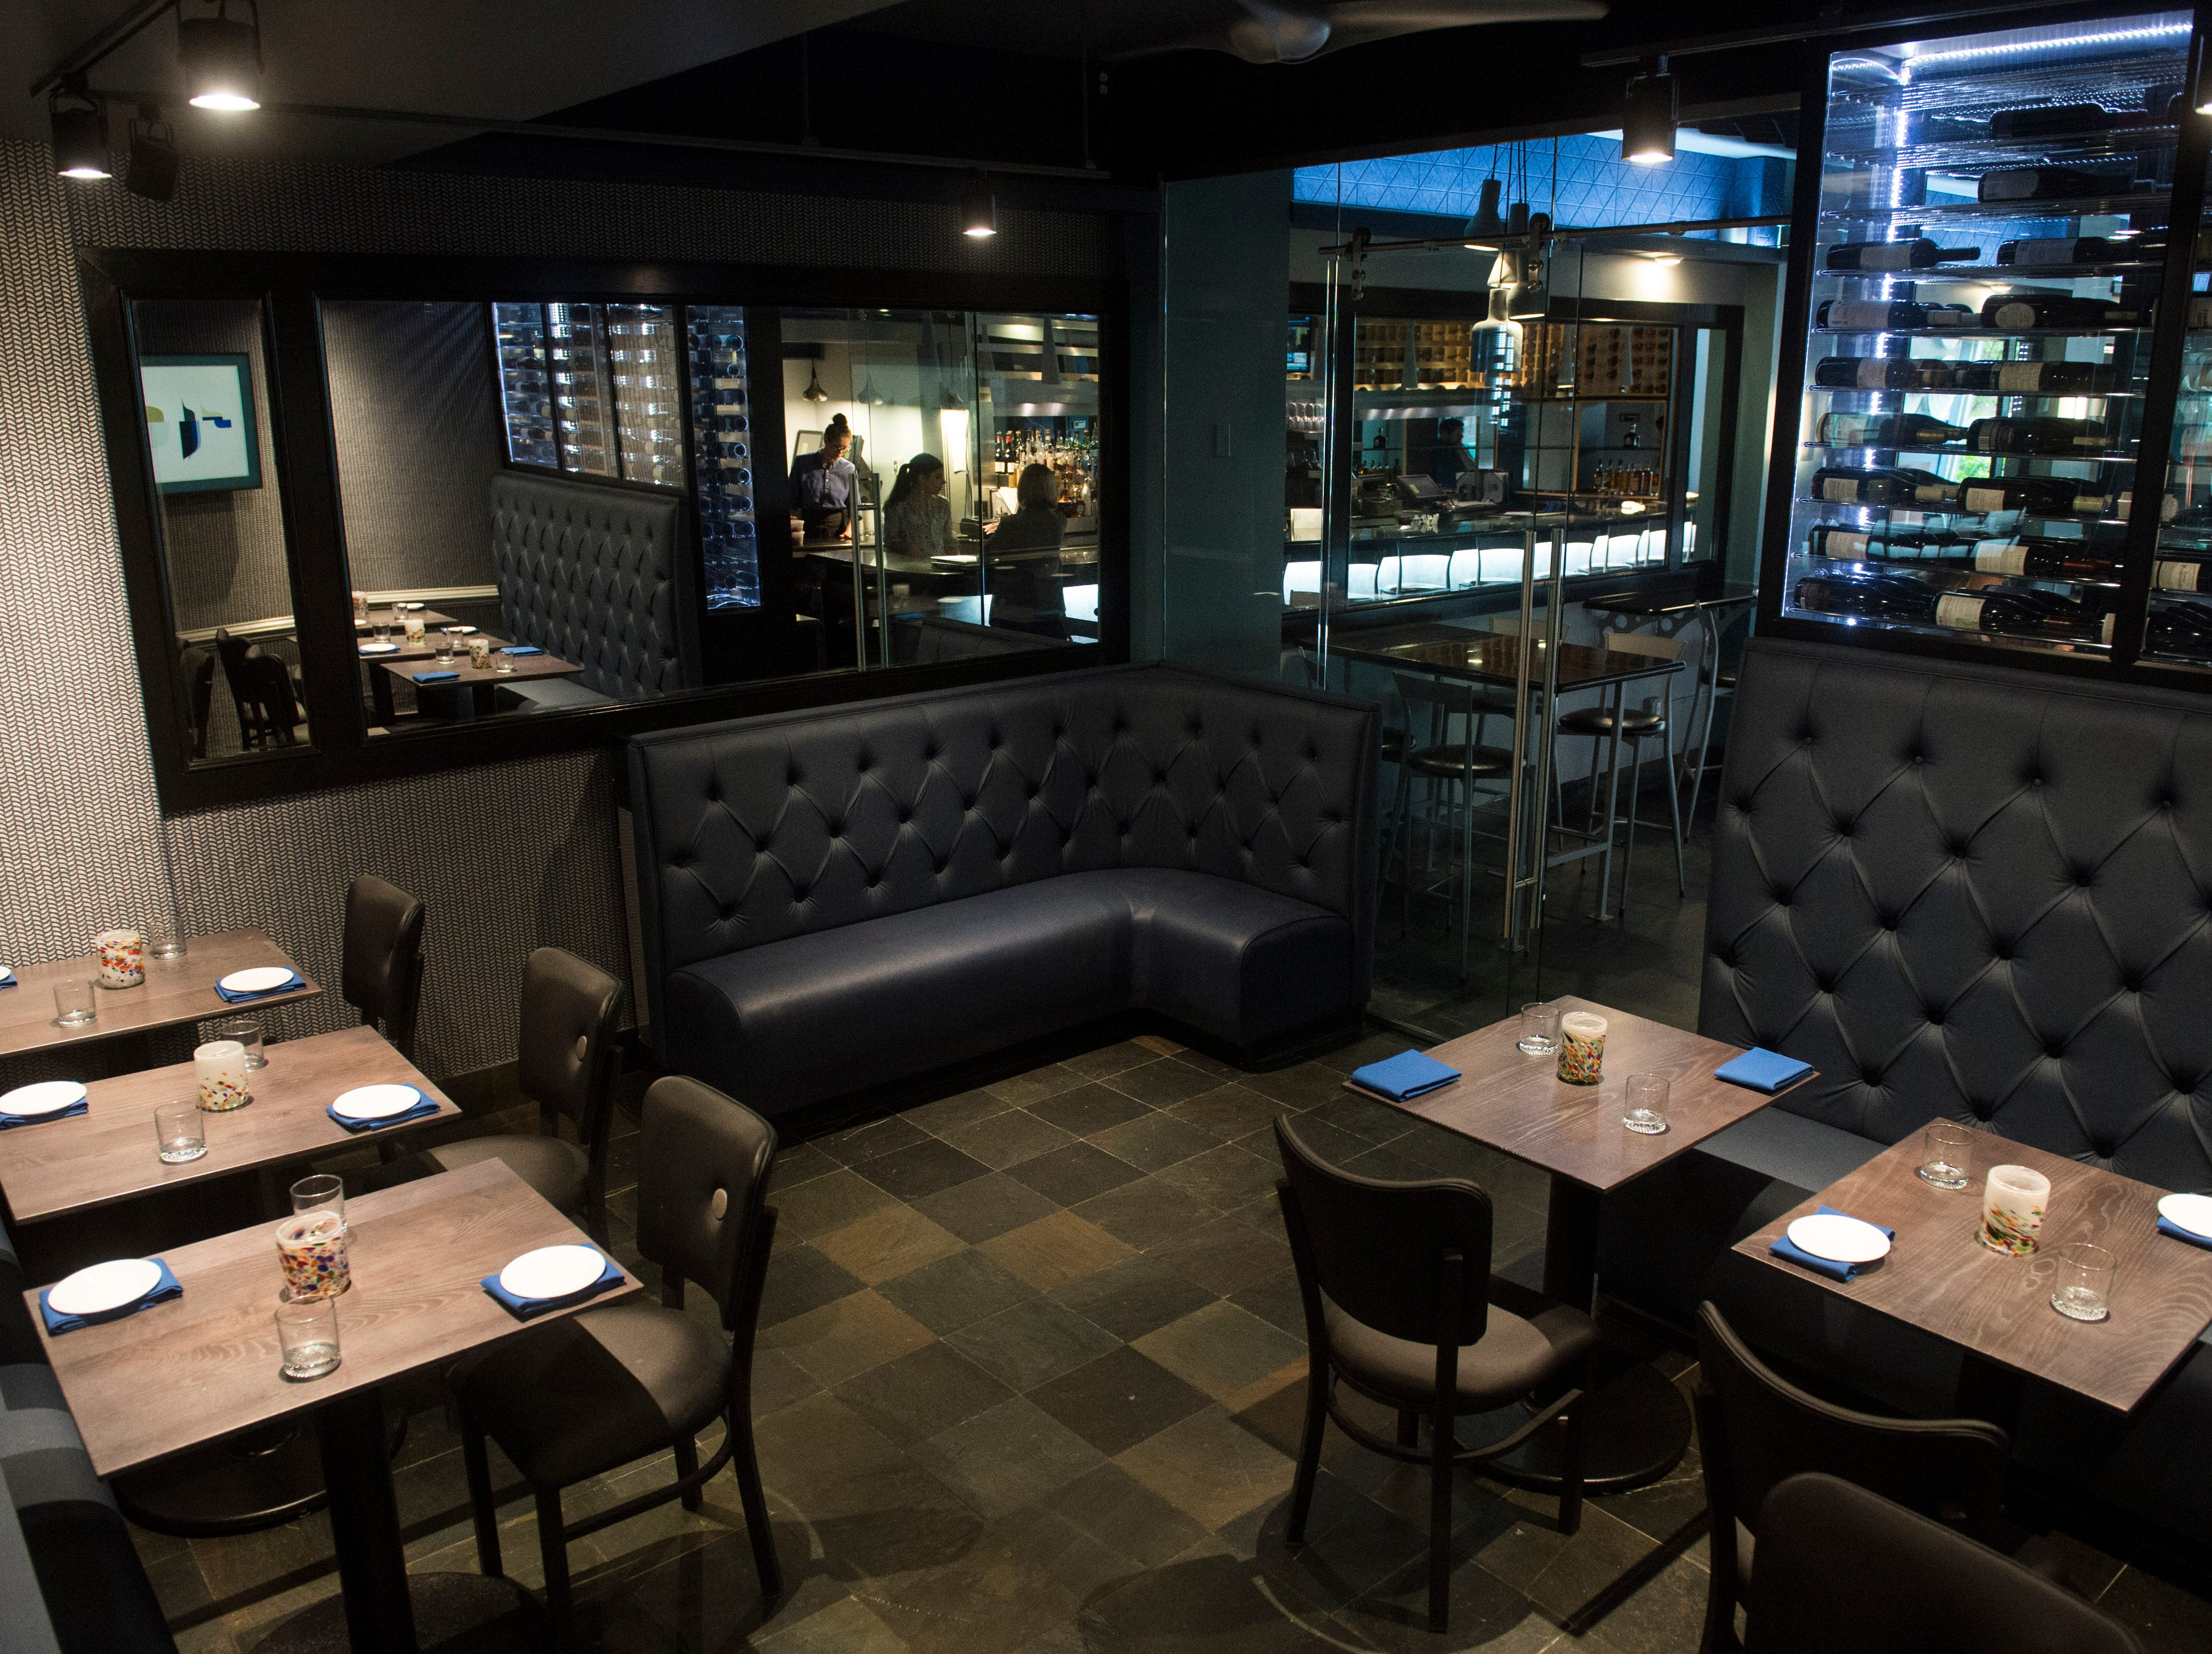 A bistro sits on the other side of the bar at The Left Bank. The room, which was just created and has a glass door entrance, can be rented out for parties.